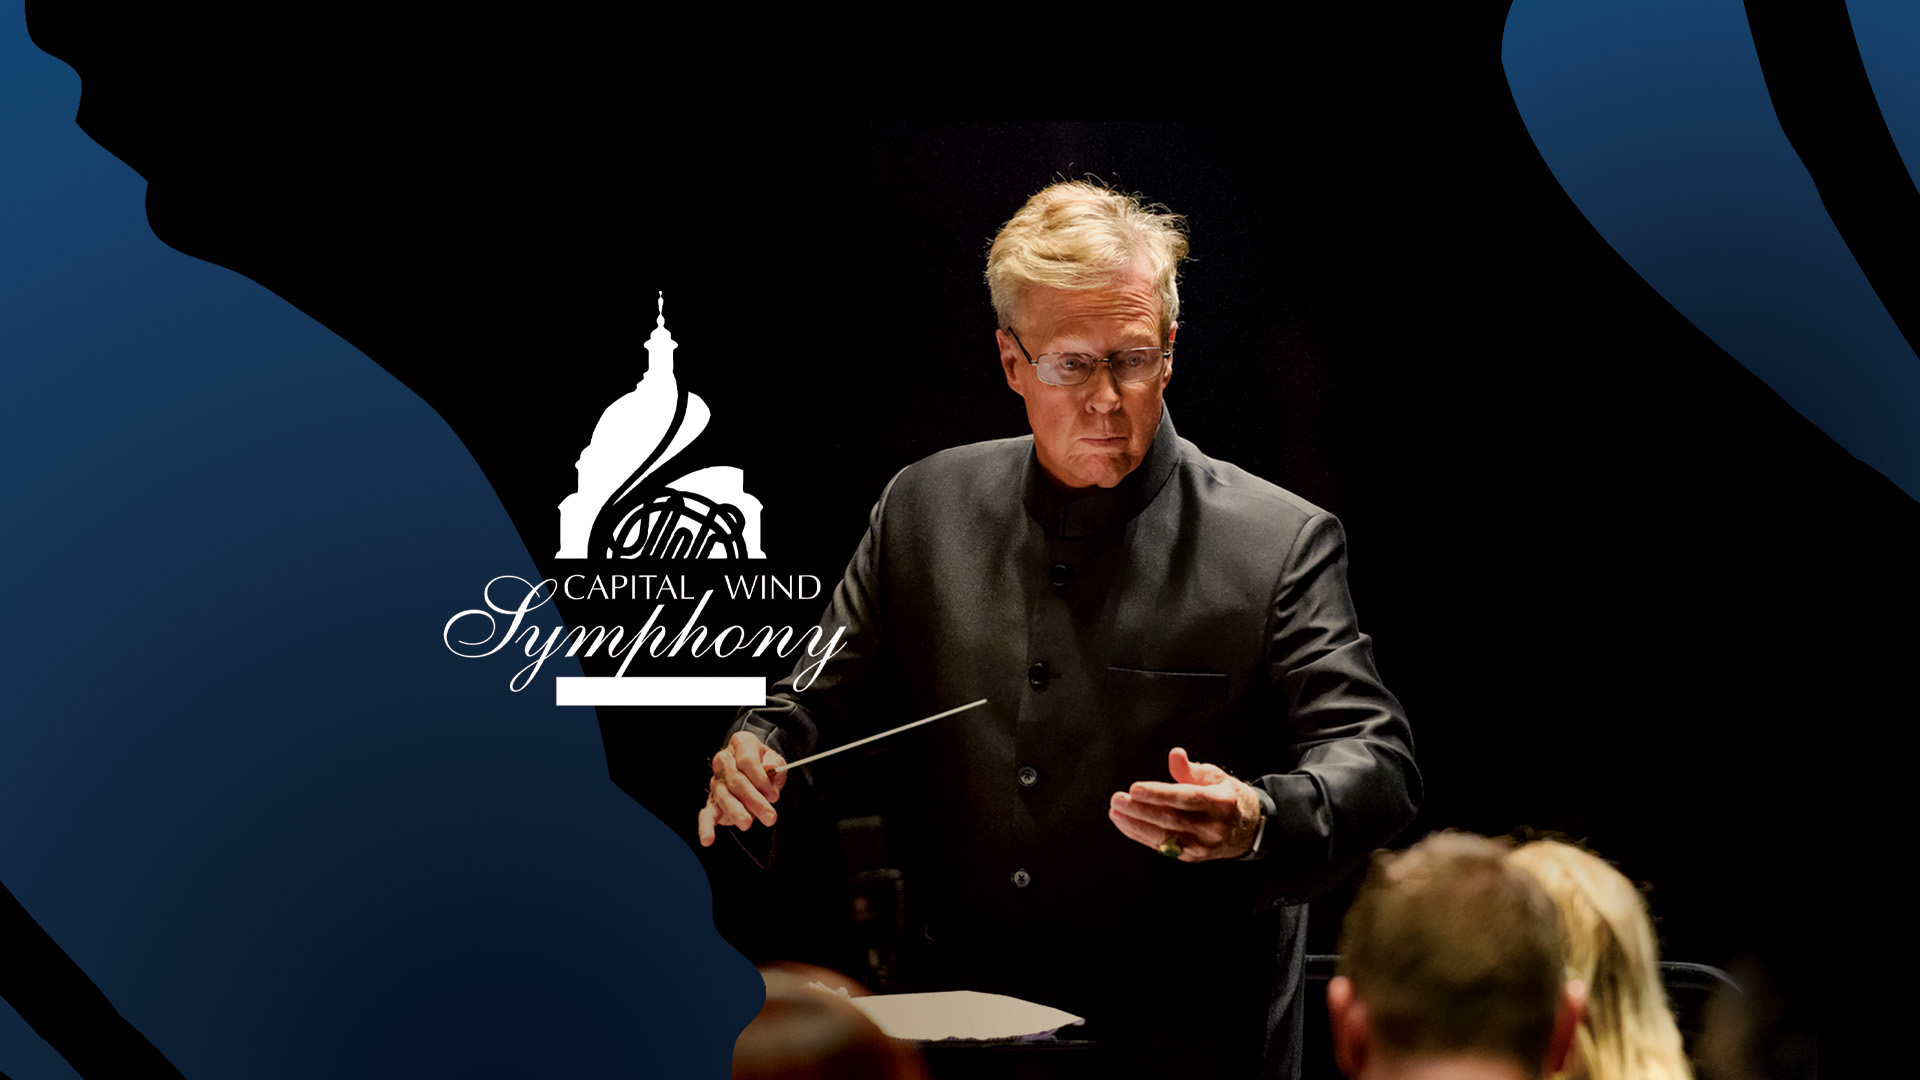 Capital Wind, Wind, Capital Wind Symphony, Camphouse, capital one hall, capital one center, things to do in DC, Tysons, classical, Band, flute, flutist, Erin Fleming Morgan